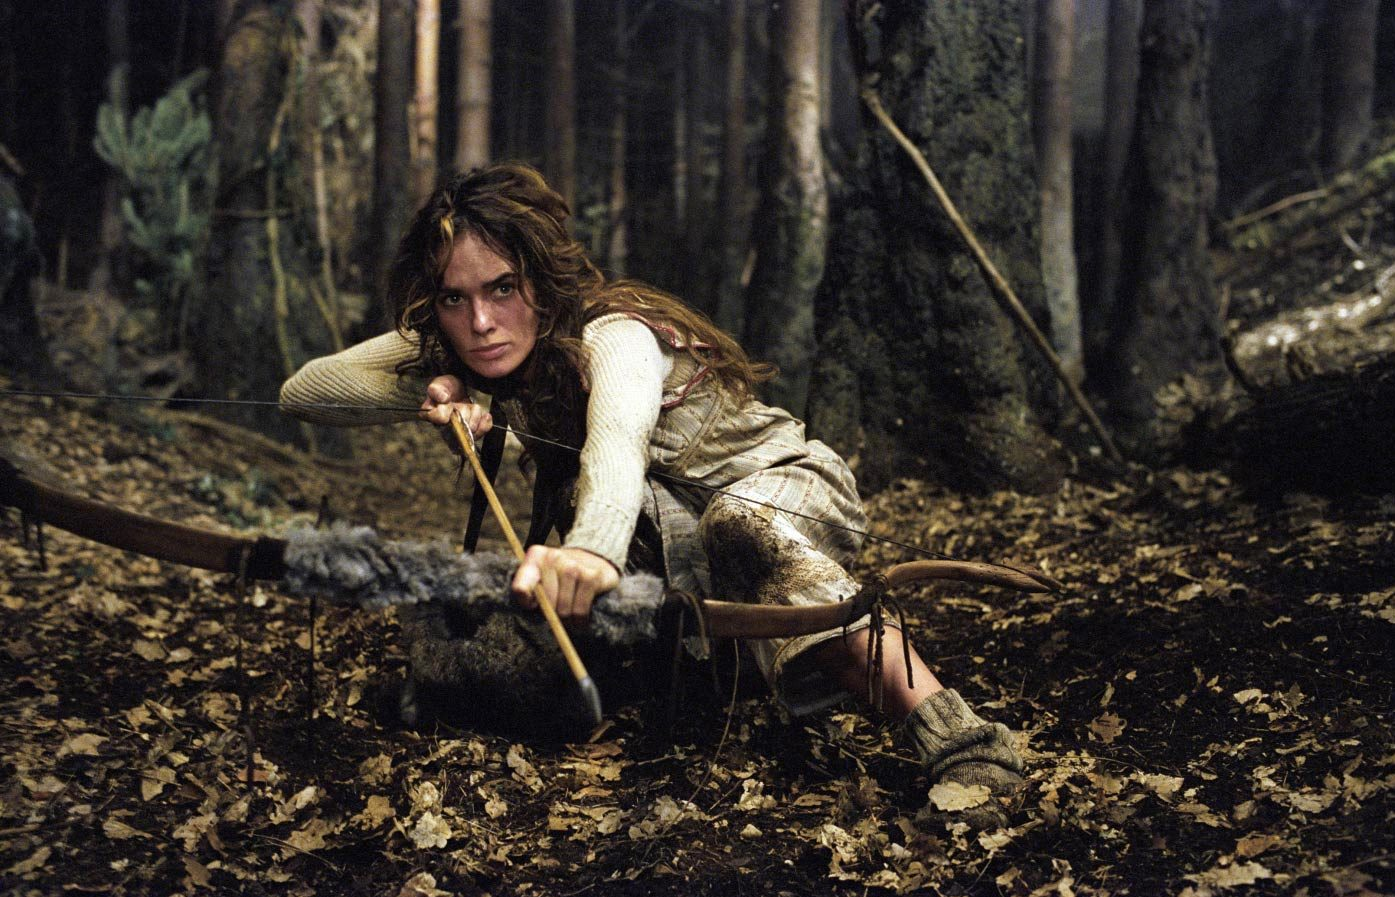 Lena Headey as the huntress Angelika in The Brothers Grimm (2005)